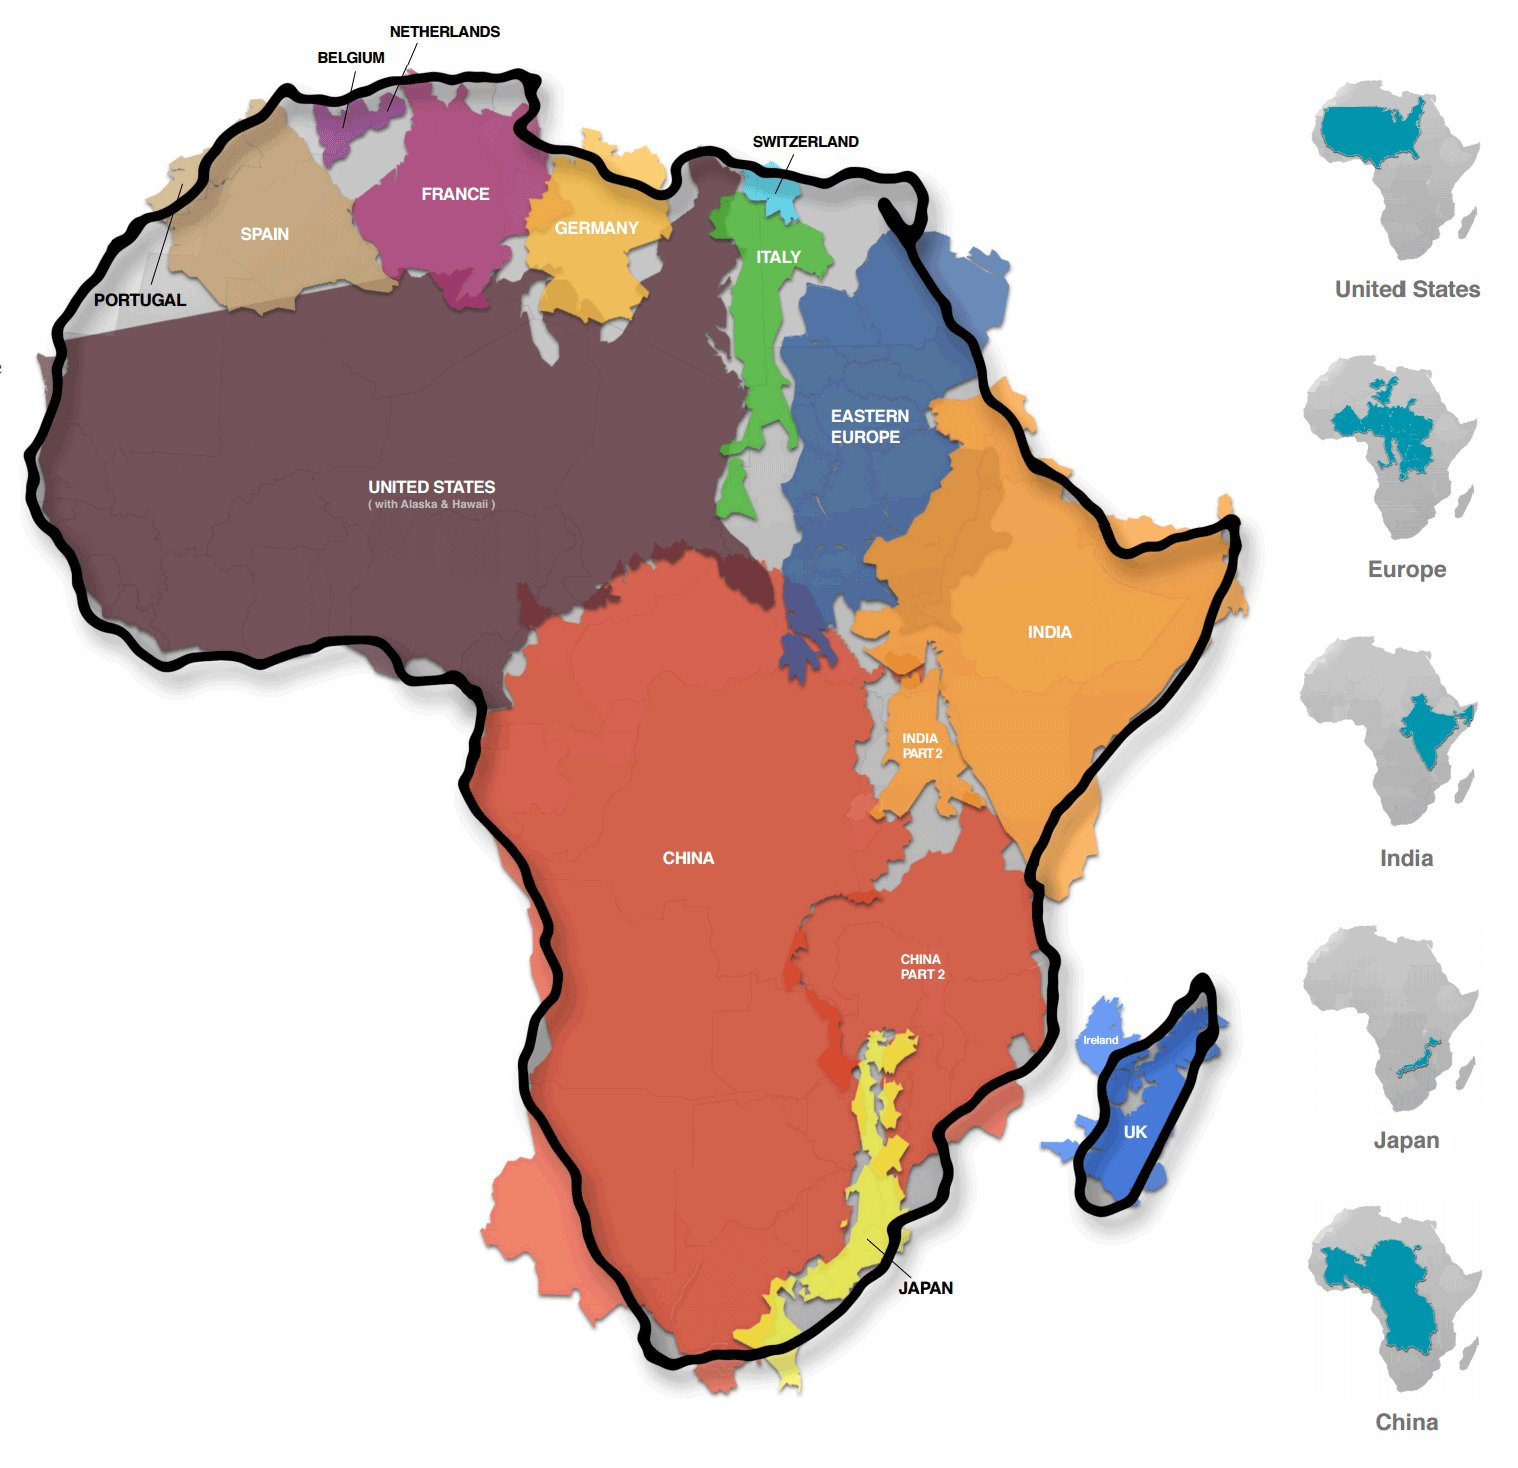 true size of africa This map revealed the true size of africa which is larger than the usa, china, india, japan and all of the europe combined vigilance the realization that what i had been taught and believed for so long is an optical illusion is somewhat unsettling and the broader implication on global leaders unimaginable.